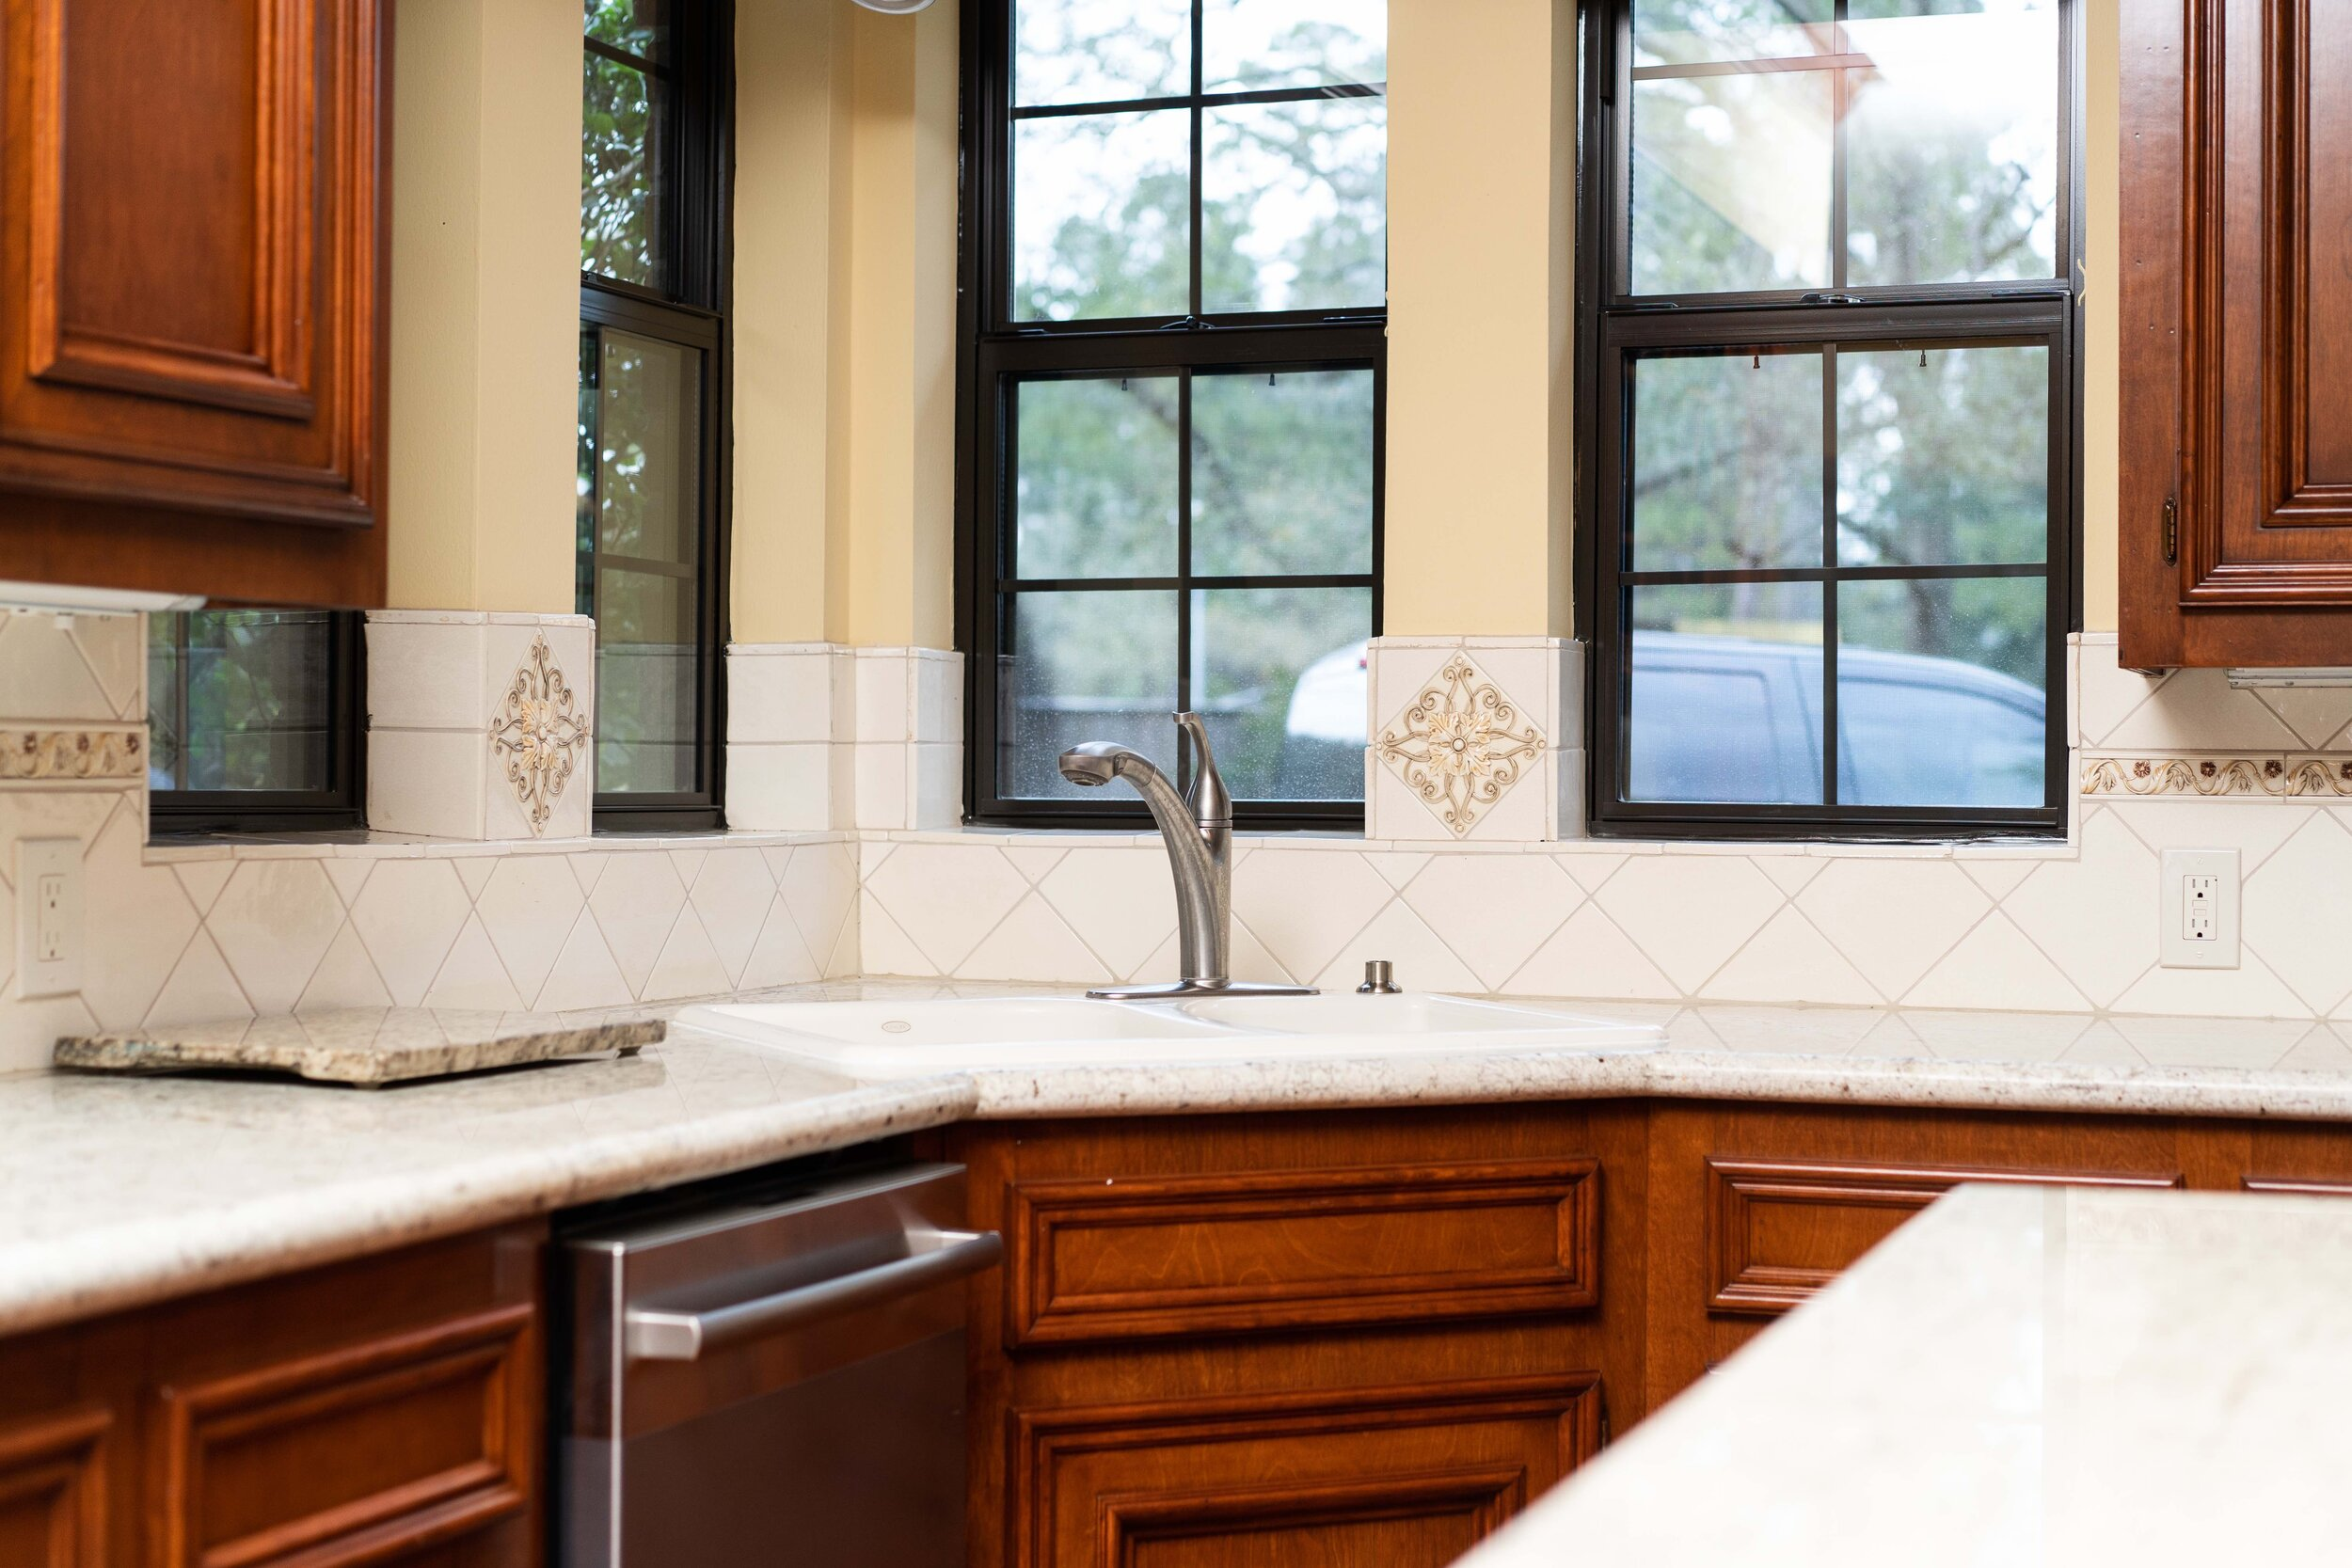 Wood stained kitchen cabinets, granite countertops, kitchen renovation, double pained windows. Kitchen renovation with stainless steel finishes.